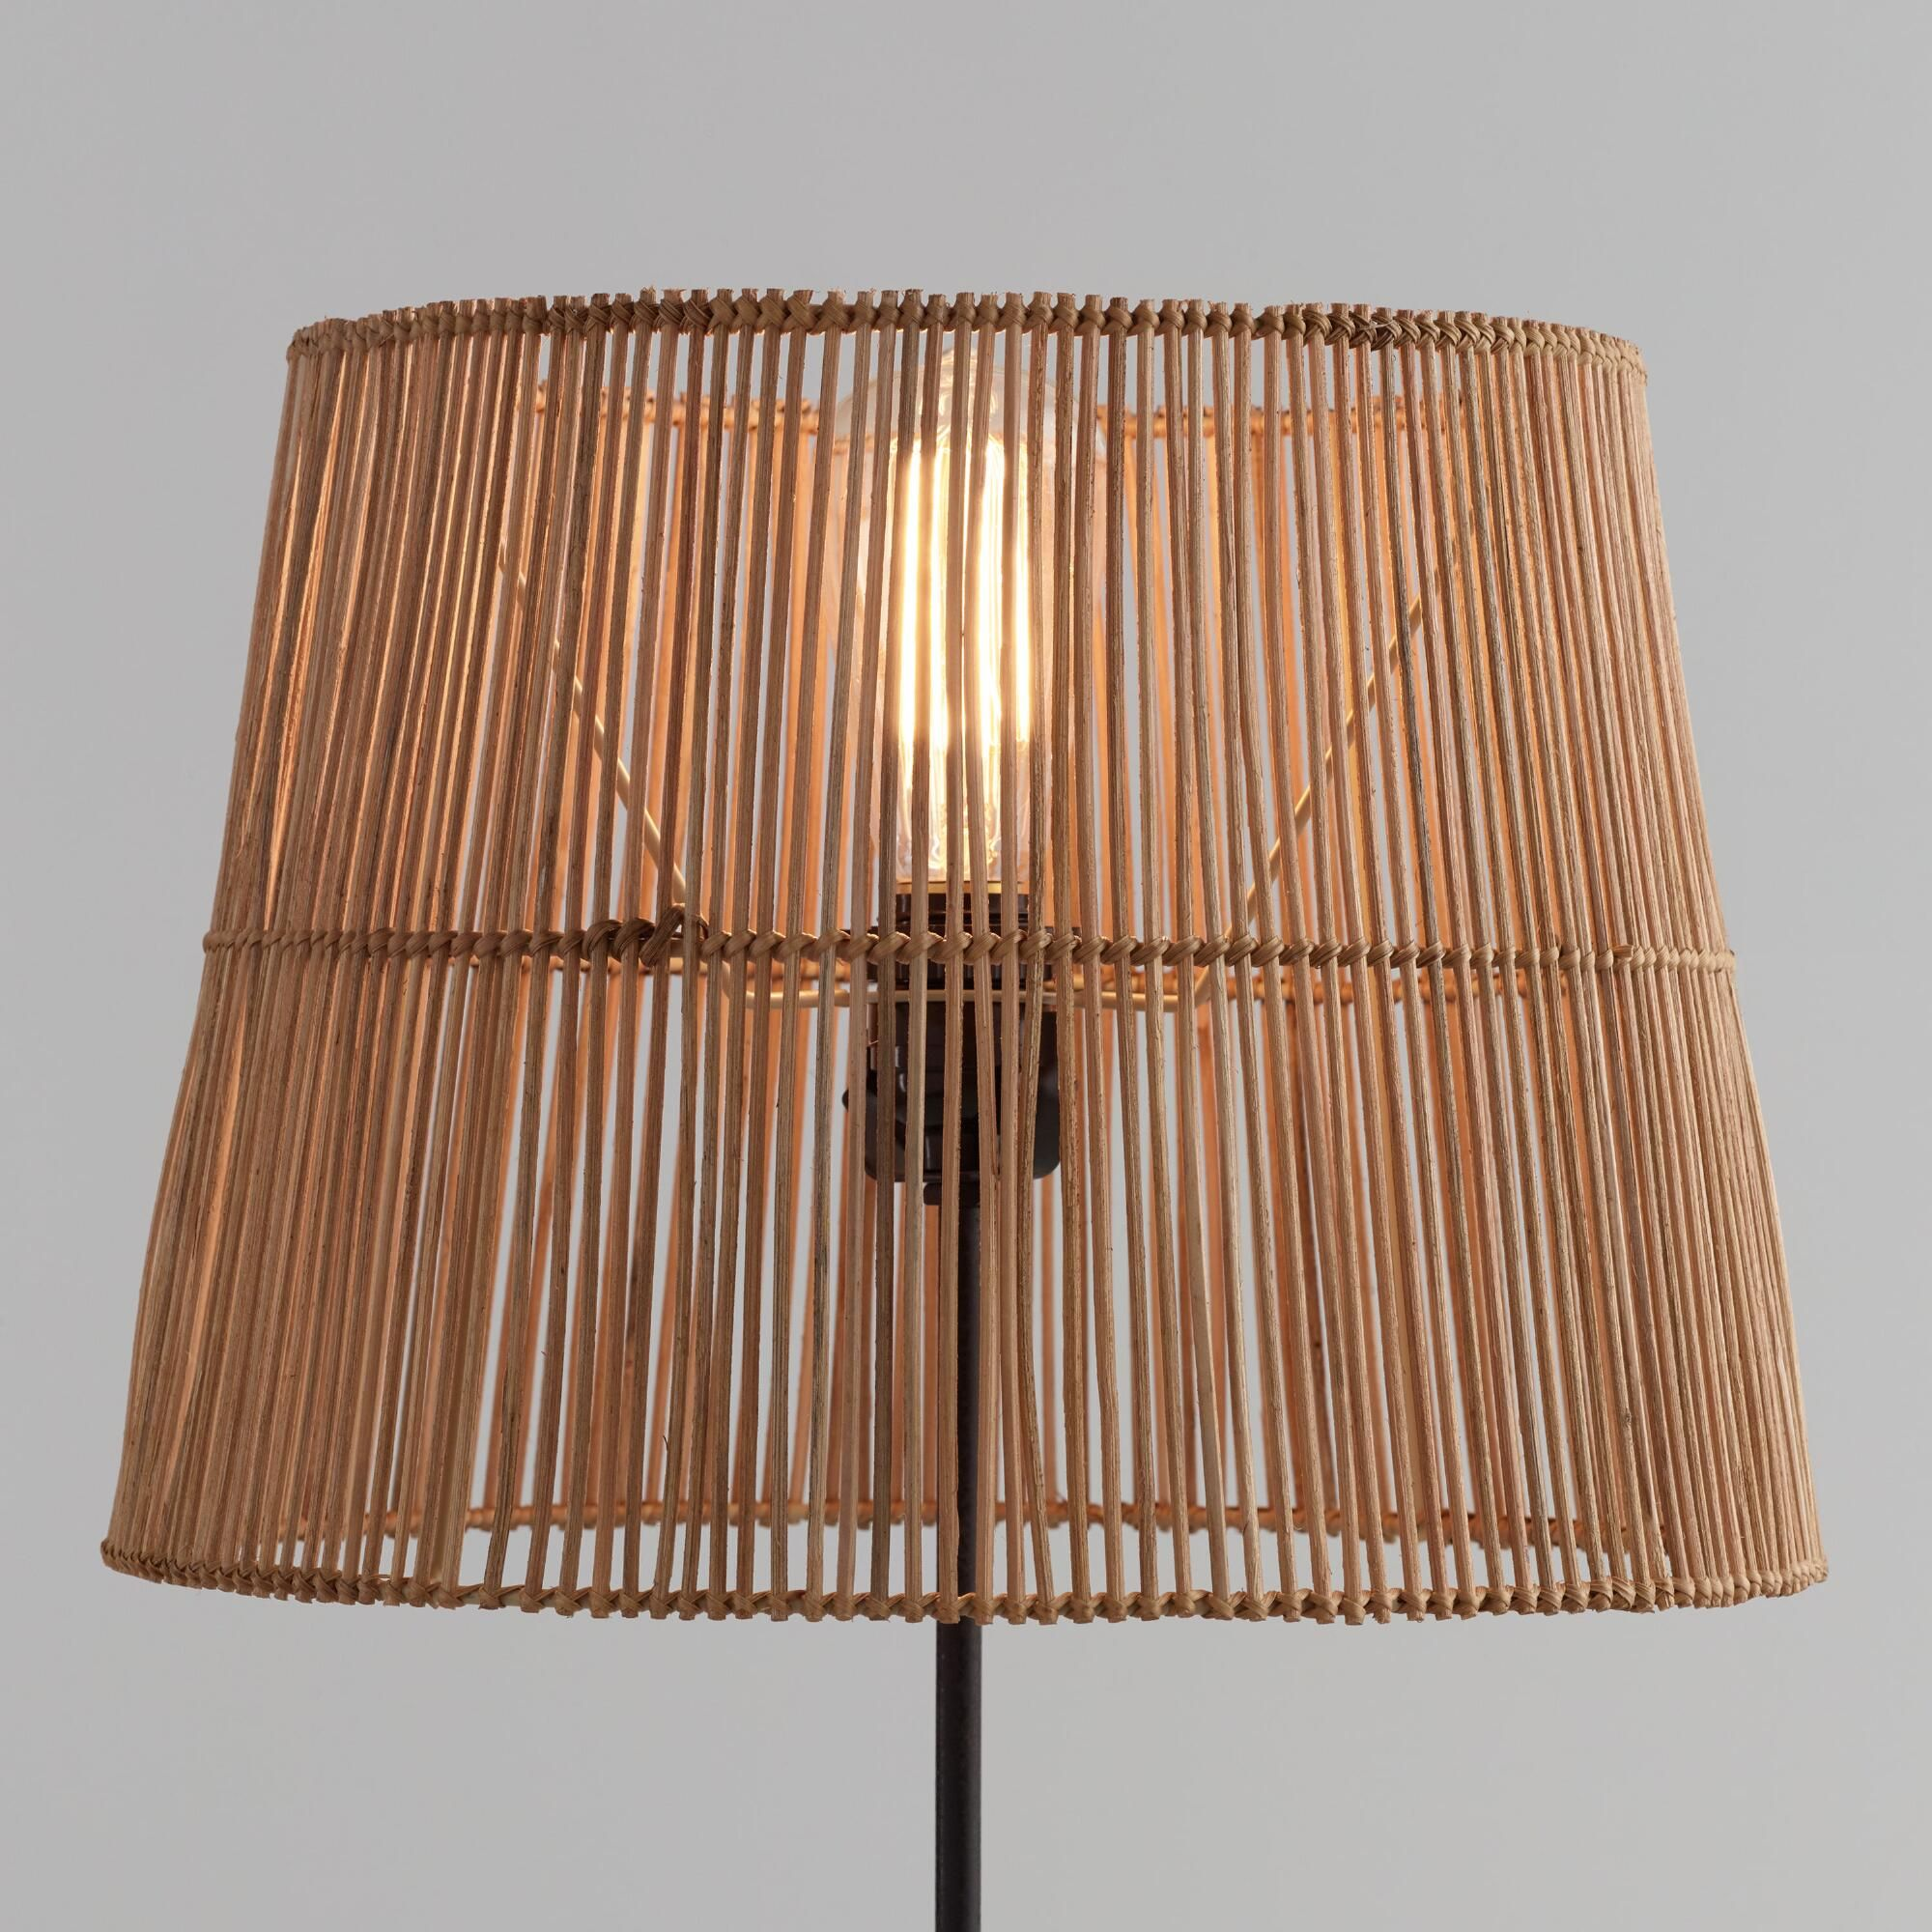 Natural Rattan Table Lamp Shade By World Market